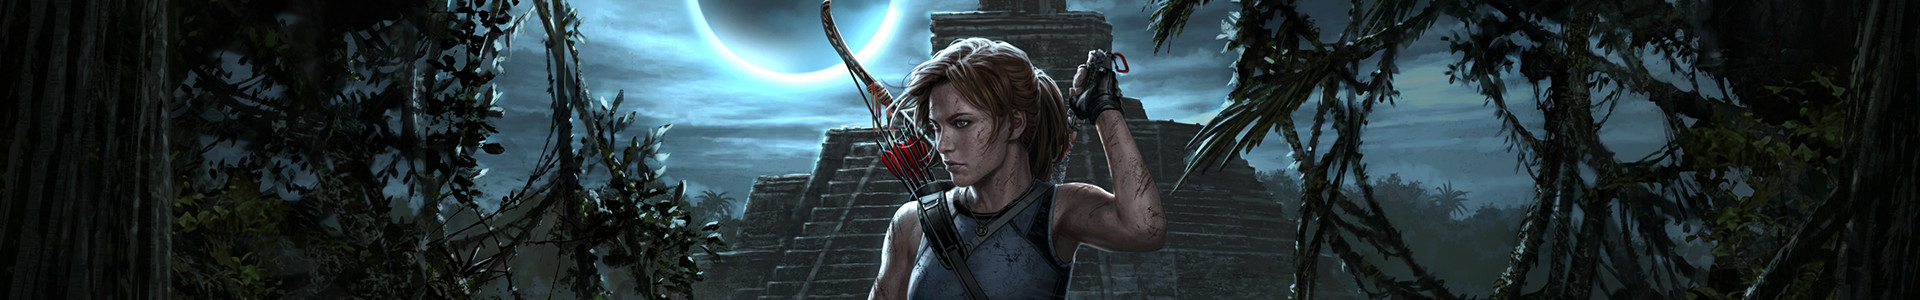 shadow-of-the-tomb-raider-banner